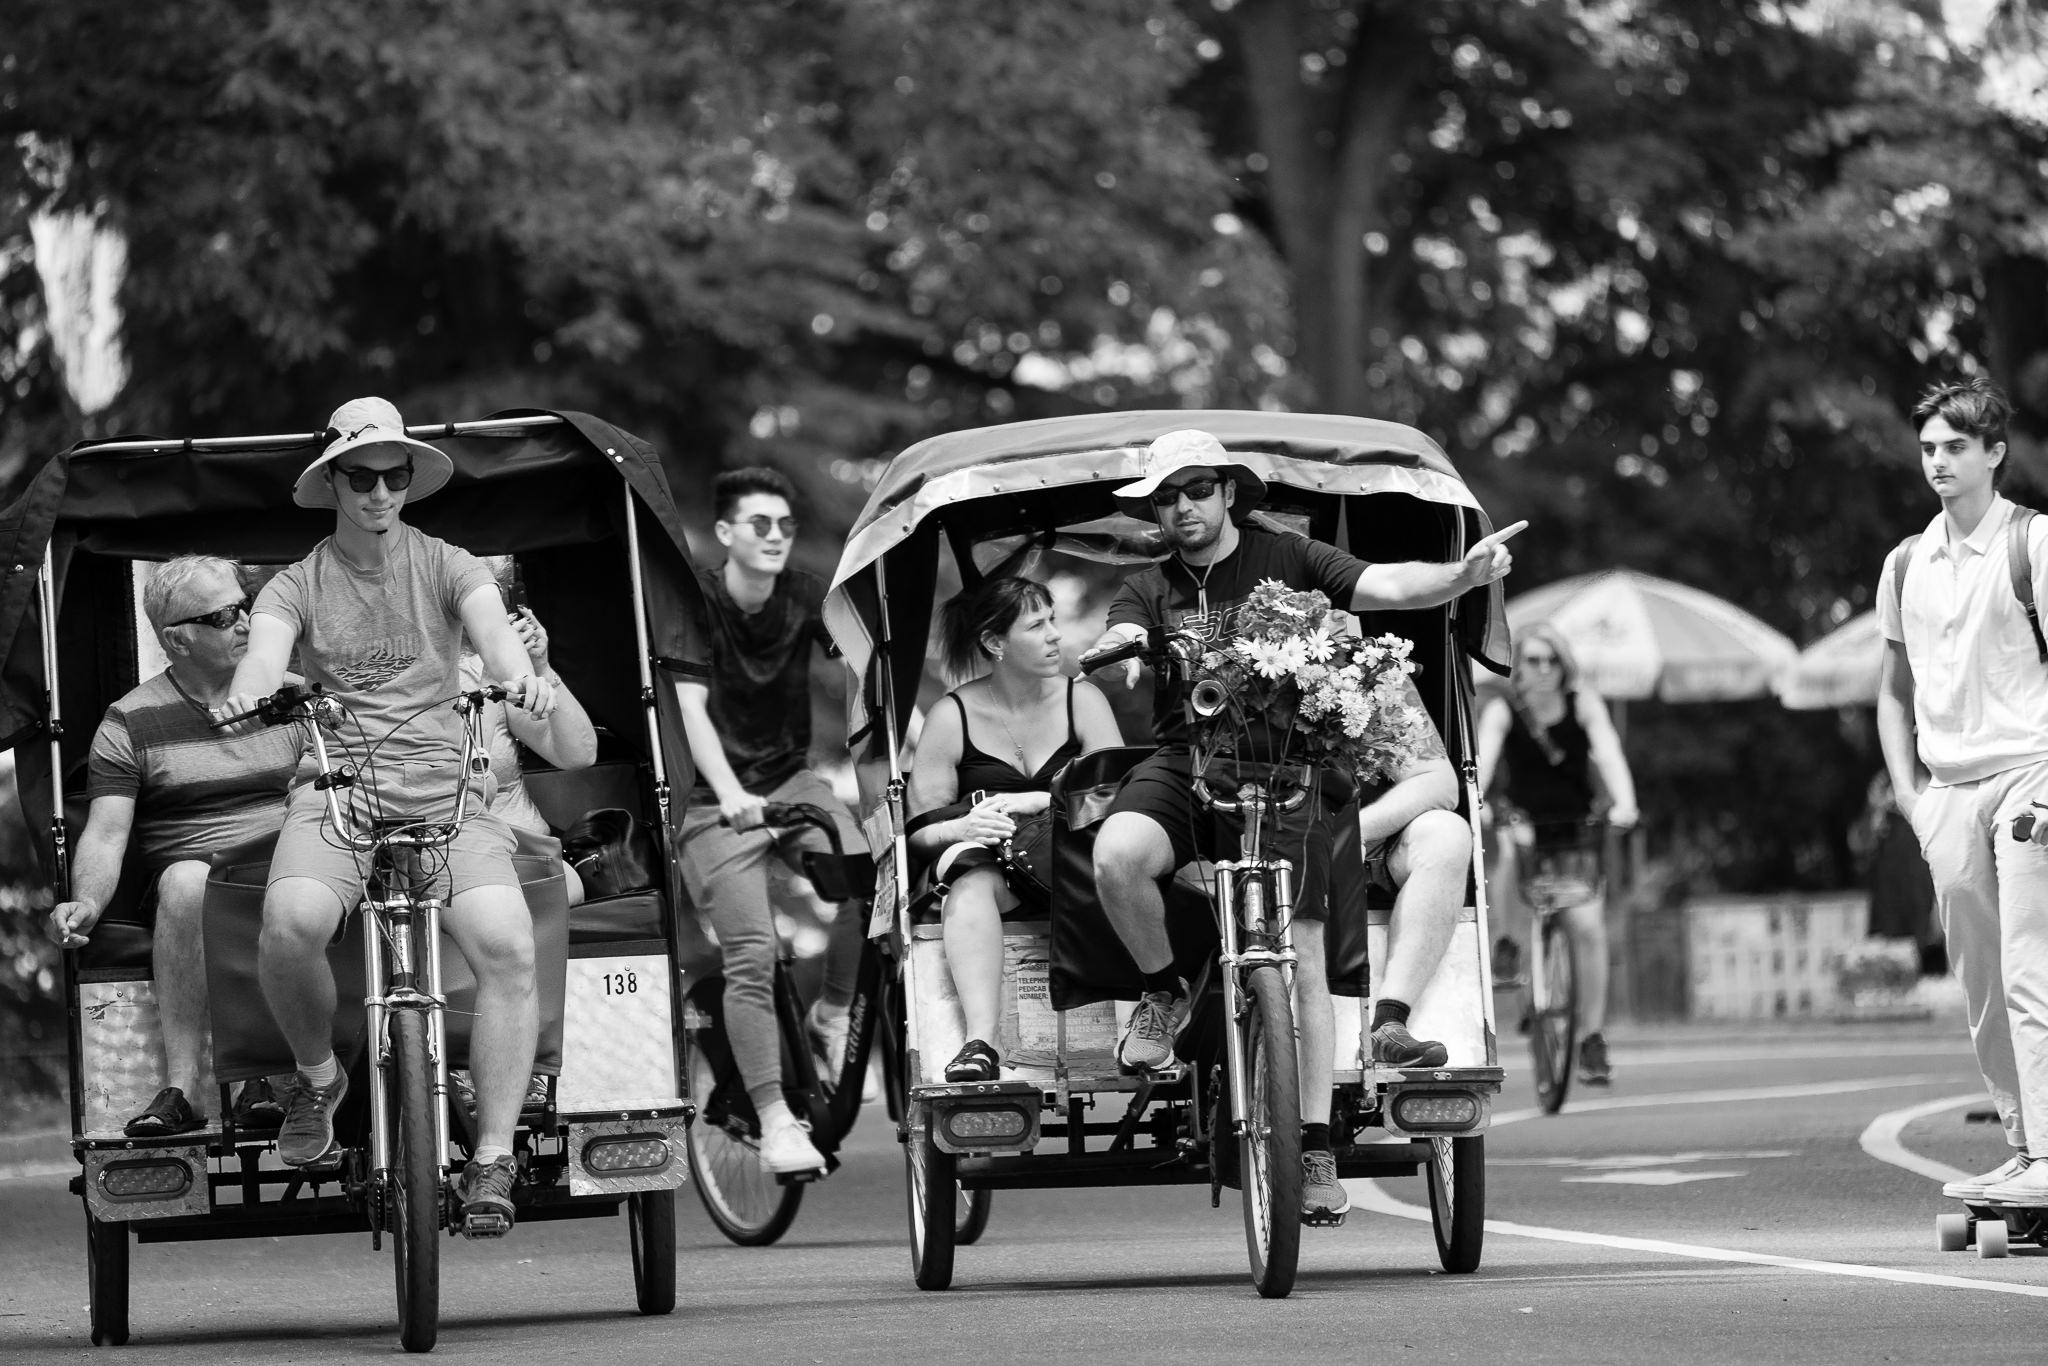 a black and white photograph of pedicabs and a skateboarder in central park new york